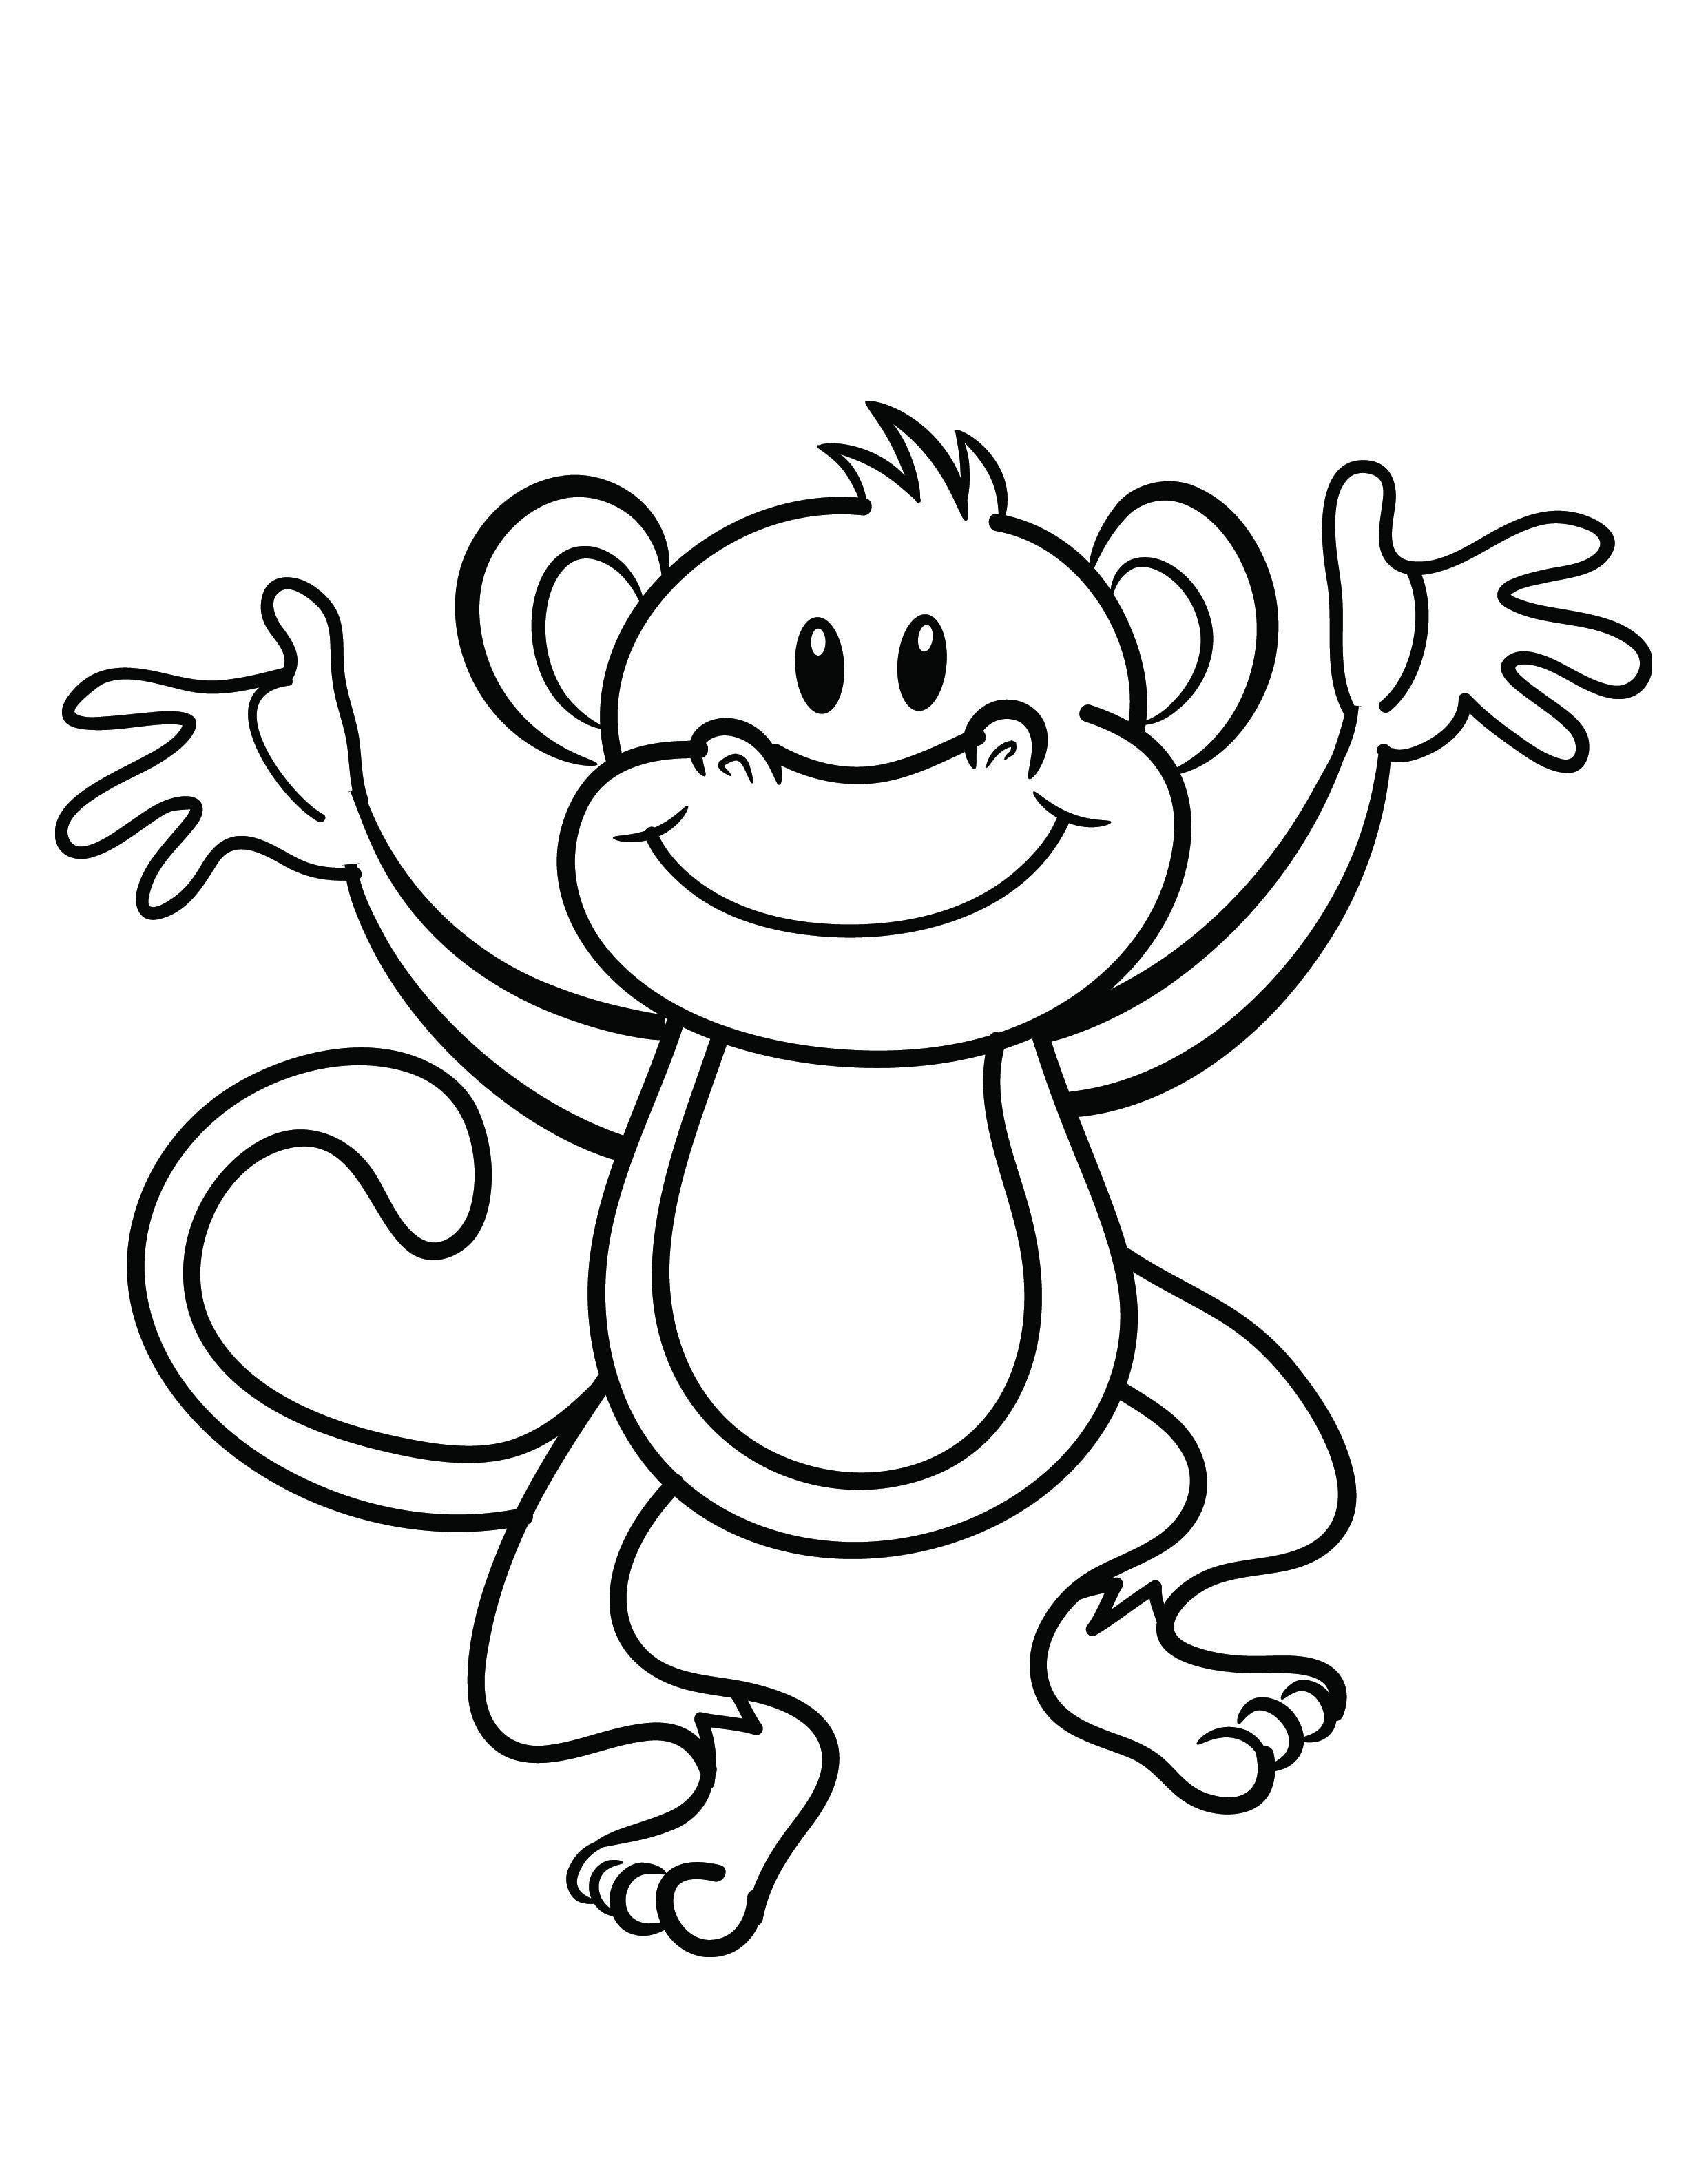 Free Printable Monkey Coloring Page | Cj 1St Birthday | Pinterest - Free Printable Monkey Coloring Sheets